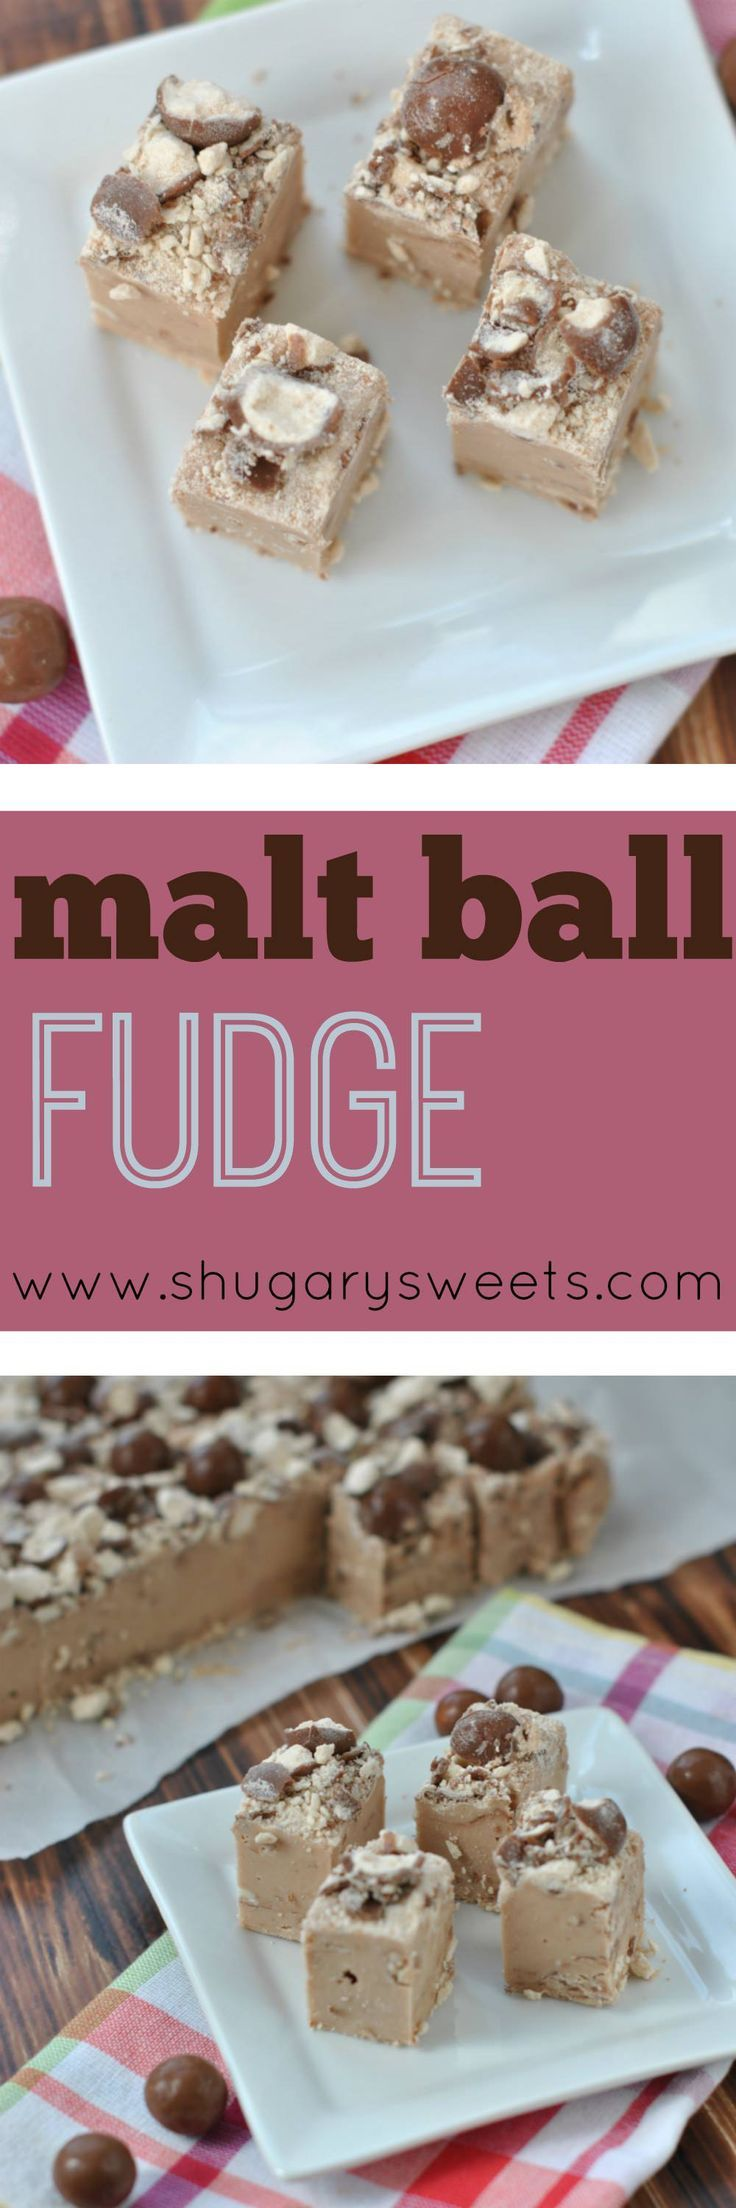 This Malt Ball Fudge recipe is filled with rich chocolate Ovaltine and chopped candy. Doesn't get much better than this!